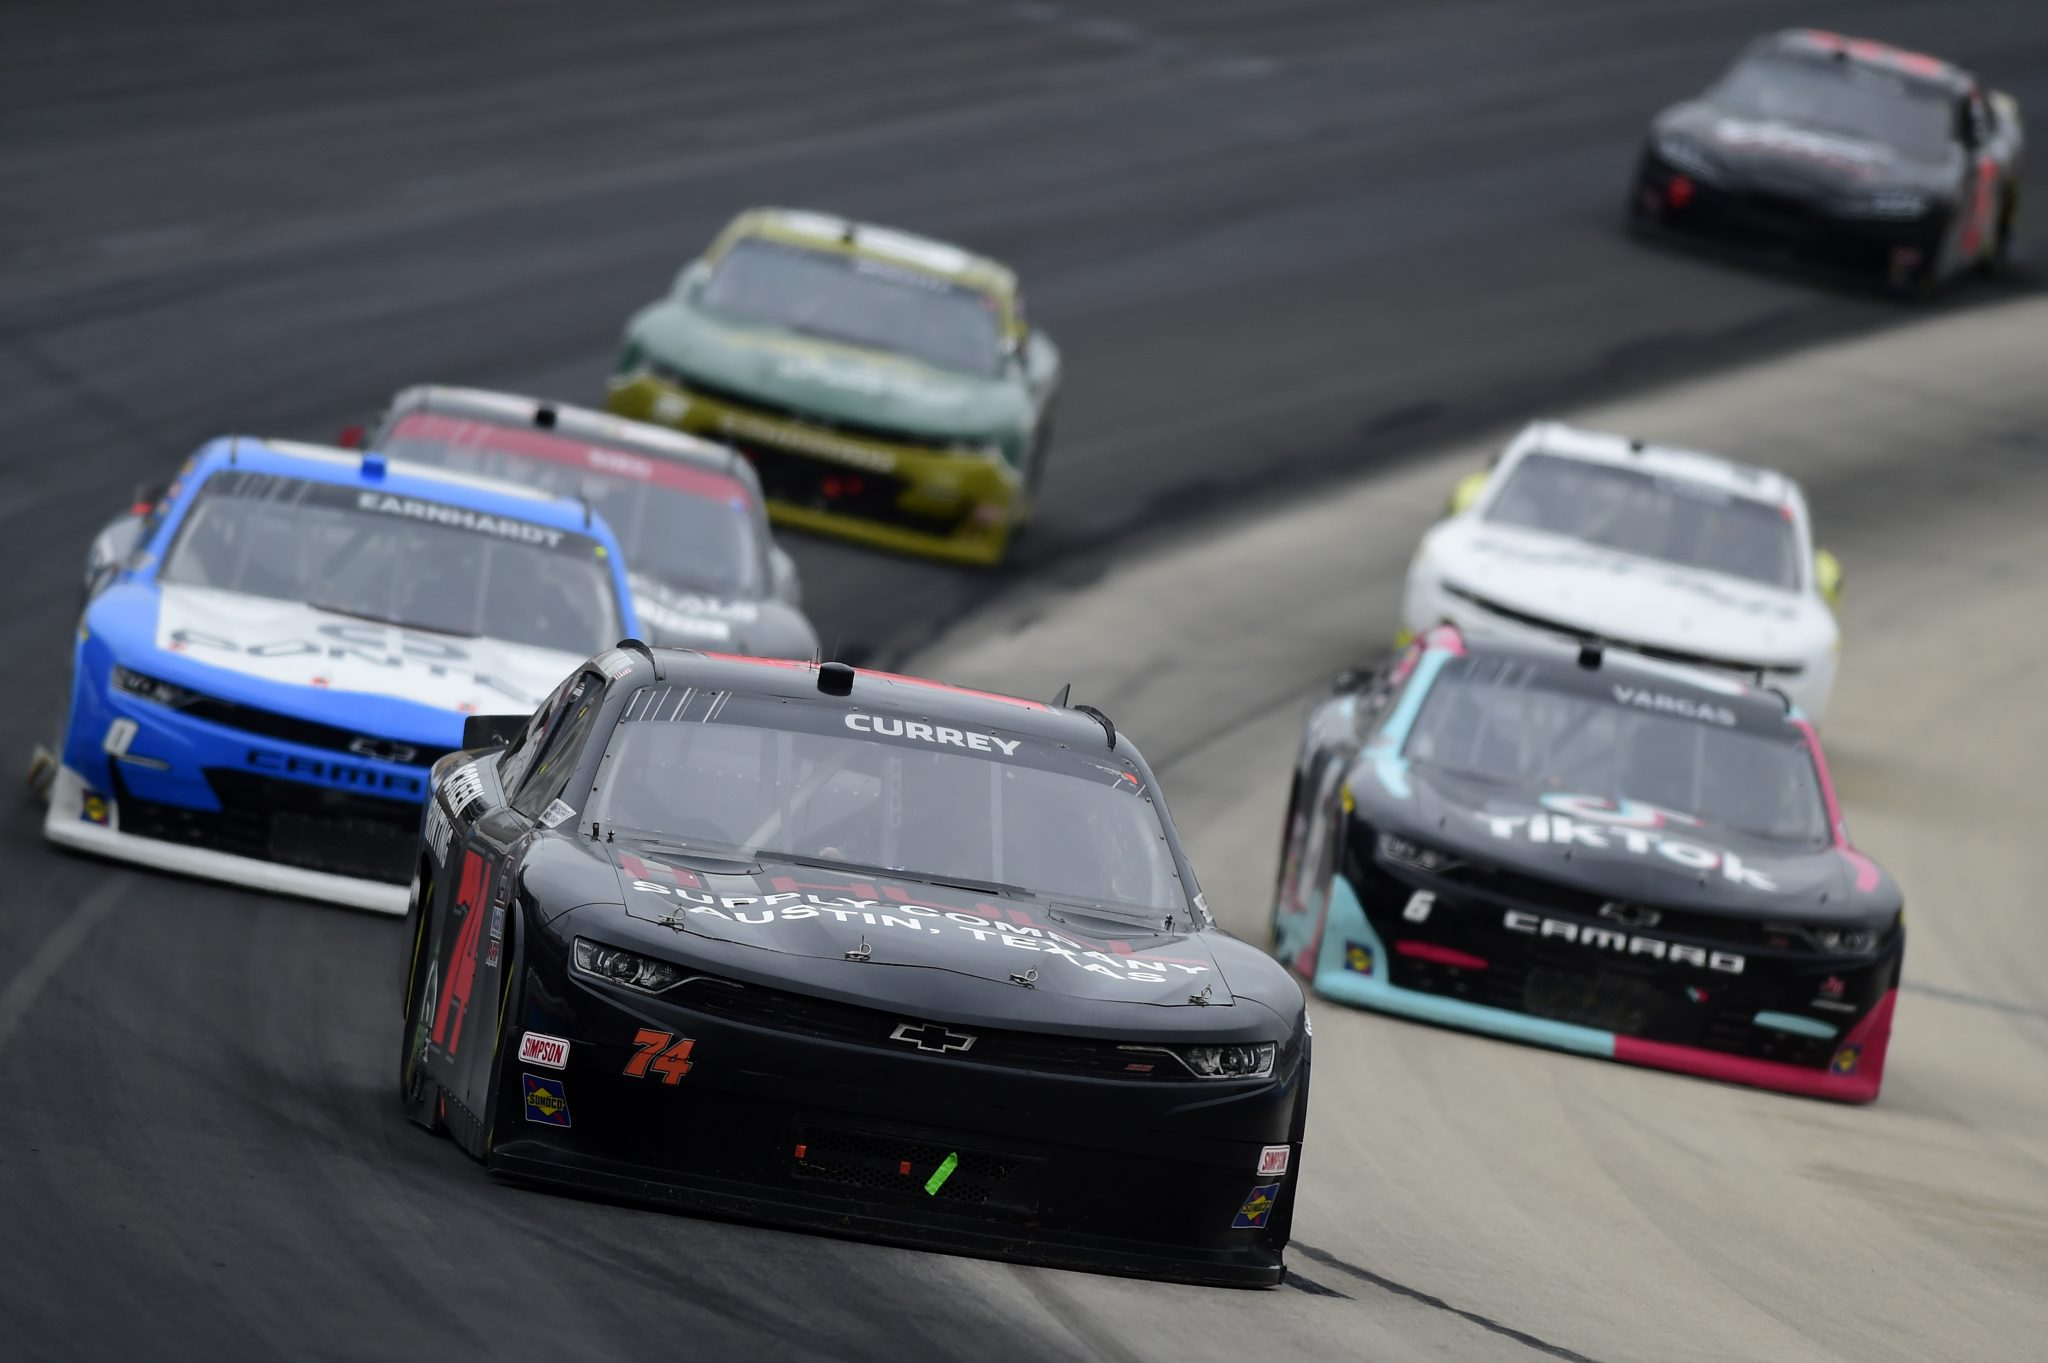 FORT WORTH, TEXAS - OCTOBER 24: Bayley Currey, driver of the #74 Chevrolet, leads the field during the NASCAR Xfinity Series O'Reilly Auto Parts 300 at Texas Motor Speedway on October 24, 2020 in Fort Worth, Texas. (Photo by Jared C. Tilton/Getty Images) | Getty Images